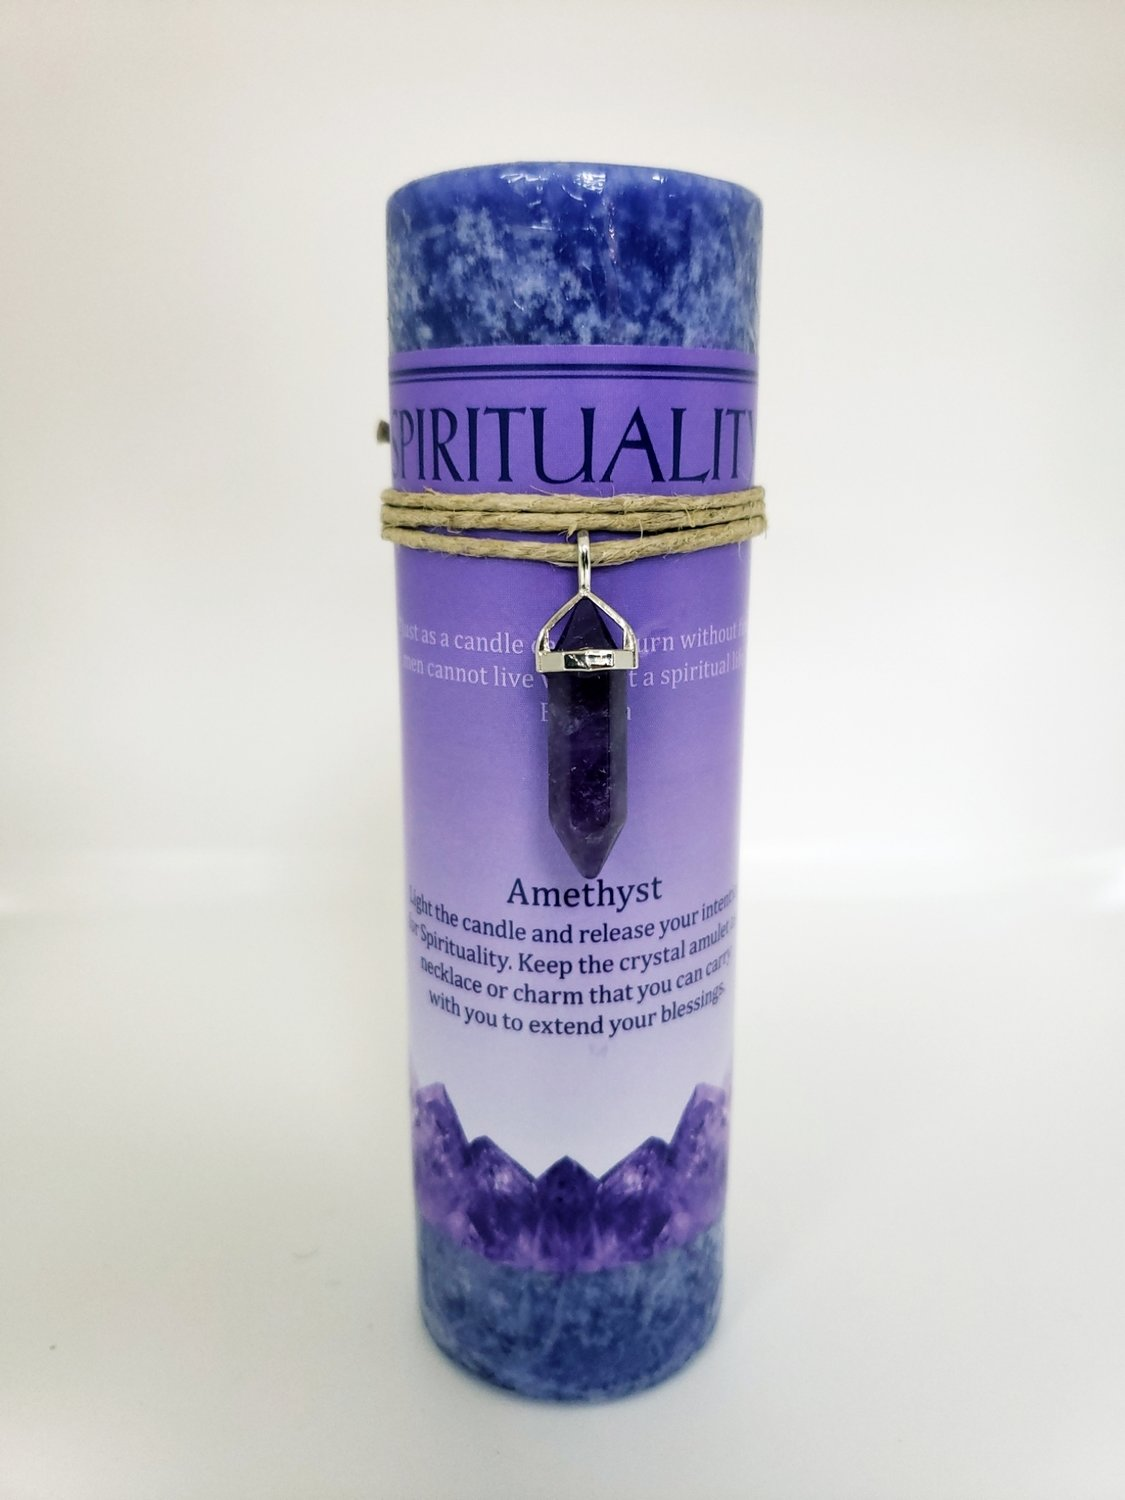 Spirituality Candle with Amethyst Pendant